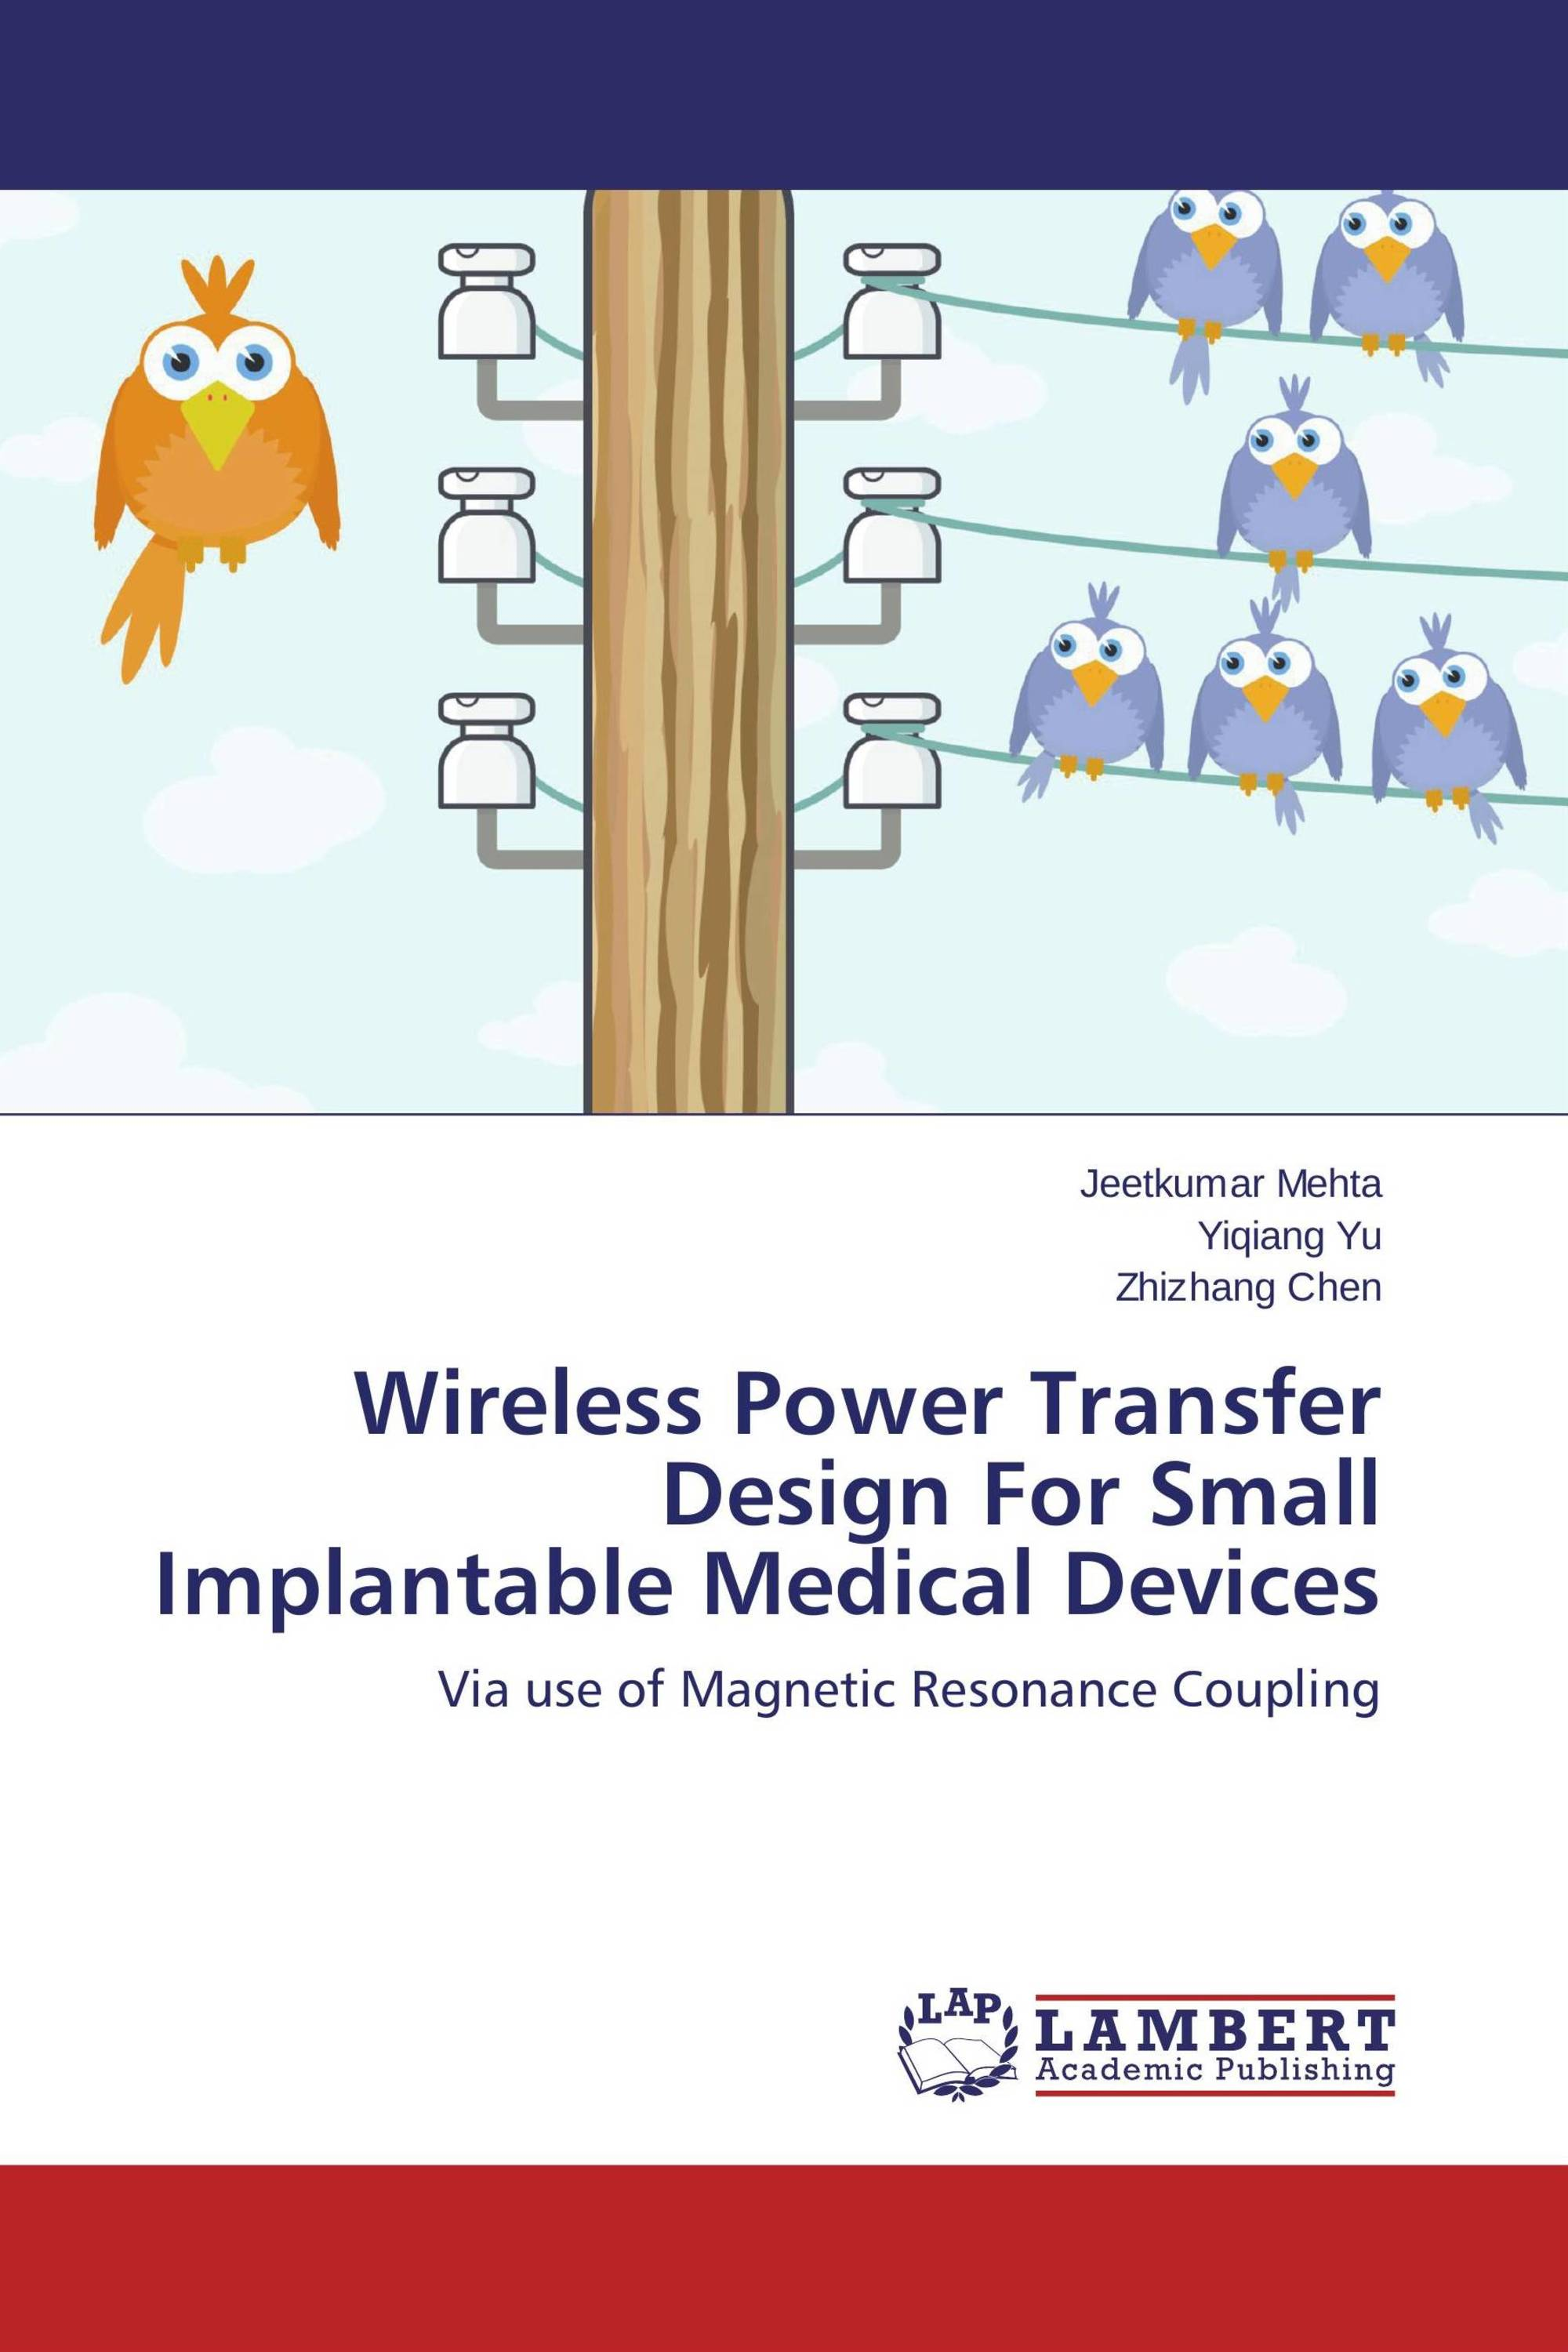 Wireless Power Transfer Design For Small Implantable Medical Devices